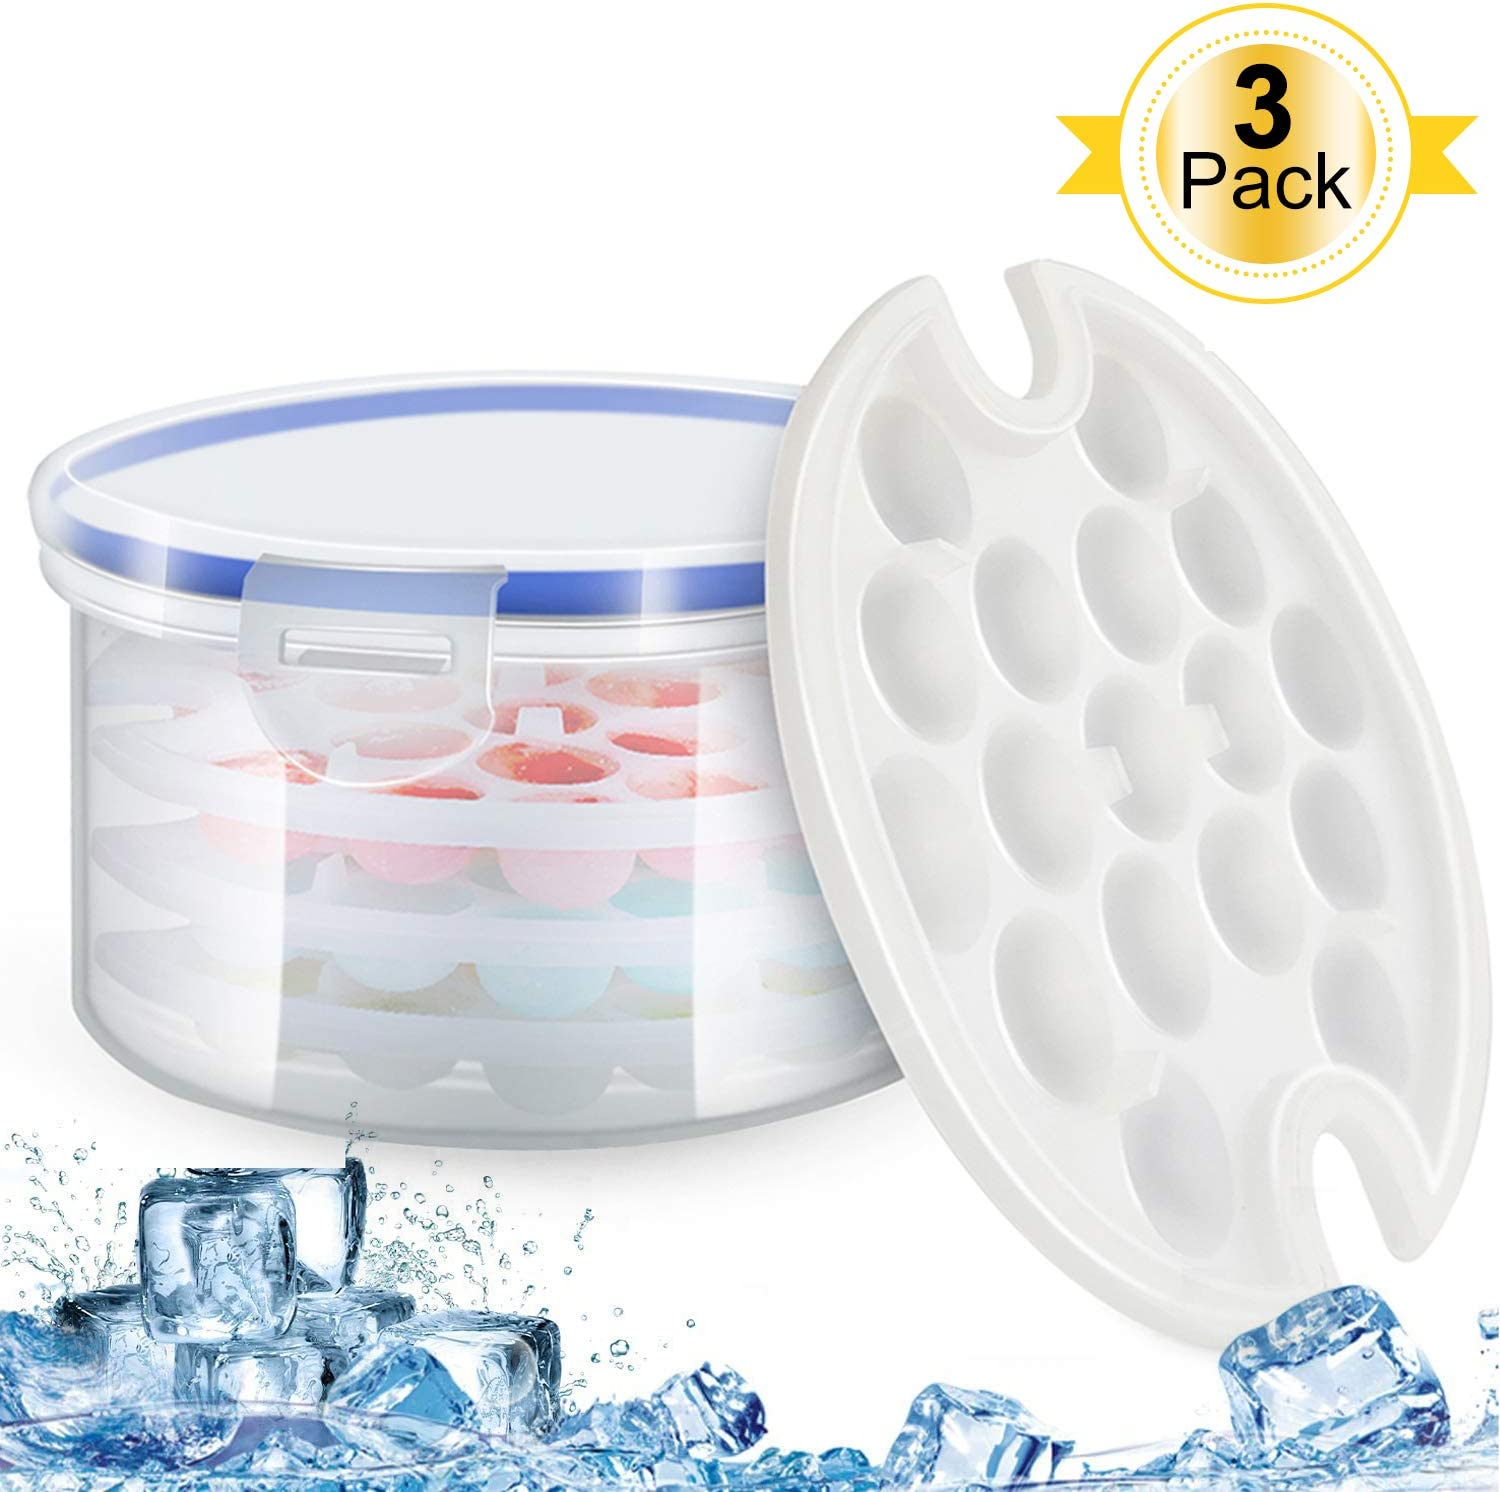 Ice Cube Tray,3 Pack 51 Ice Cubes,Ice Trays Stackable Easy Release,with Unique Spill-Resistant Clear Ice Storage Set Locking Lids,BPA Free Dishwasher Safe Mini Ice Cube Molds Ball for Freezer(White)